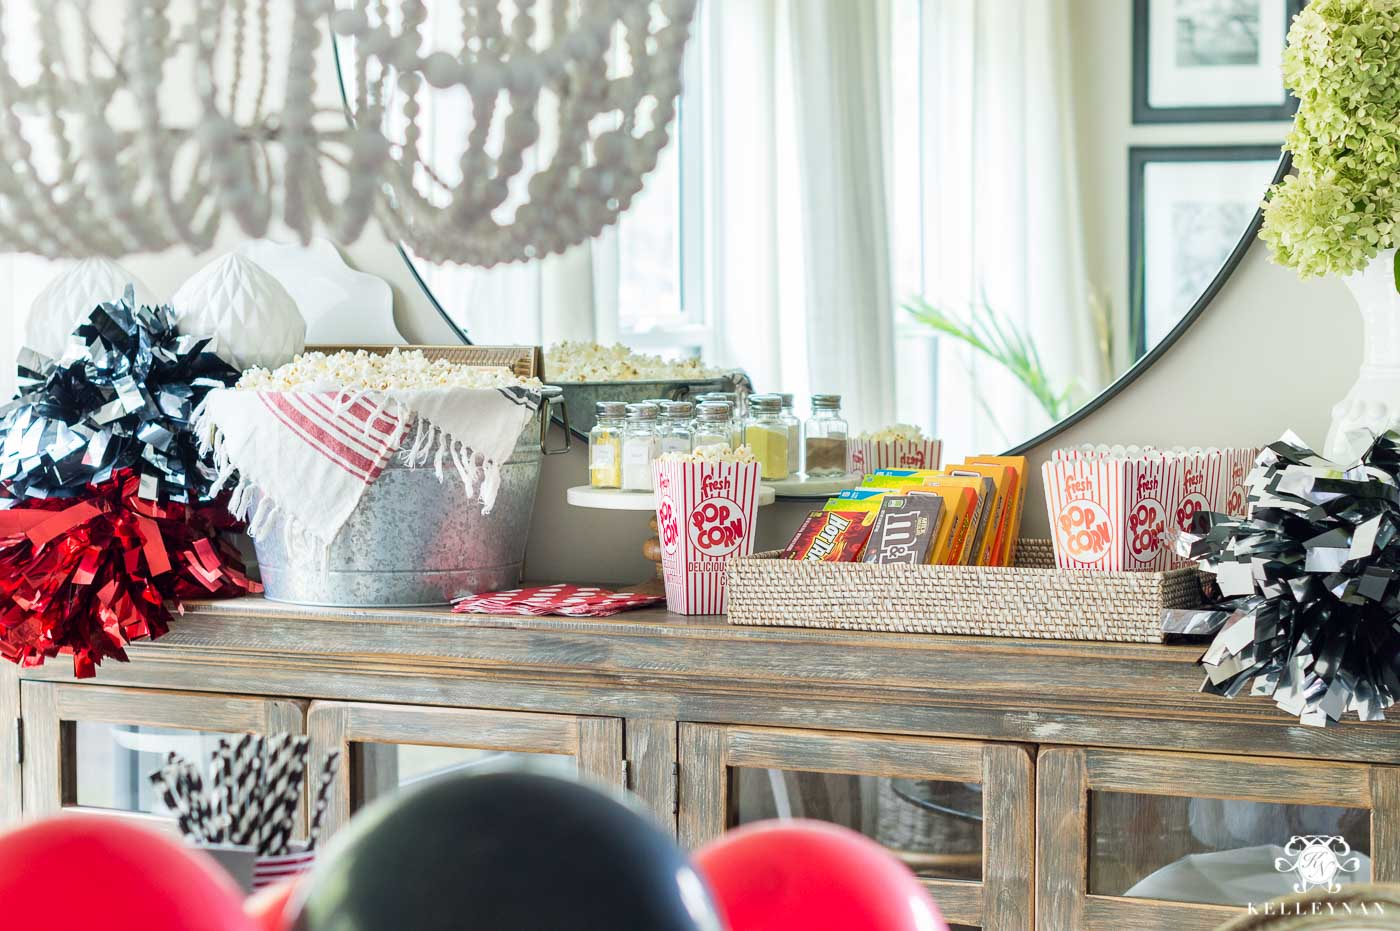 Popcorn bar ideas for at home football tailgate party